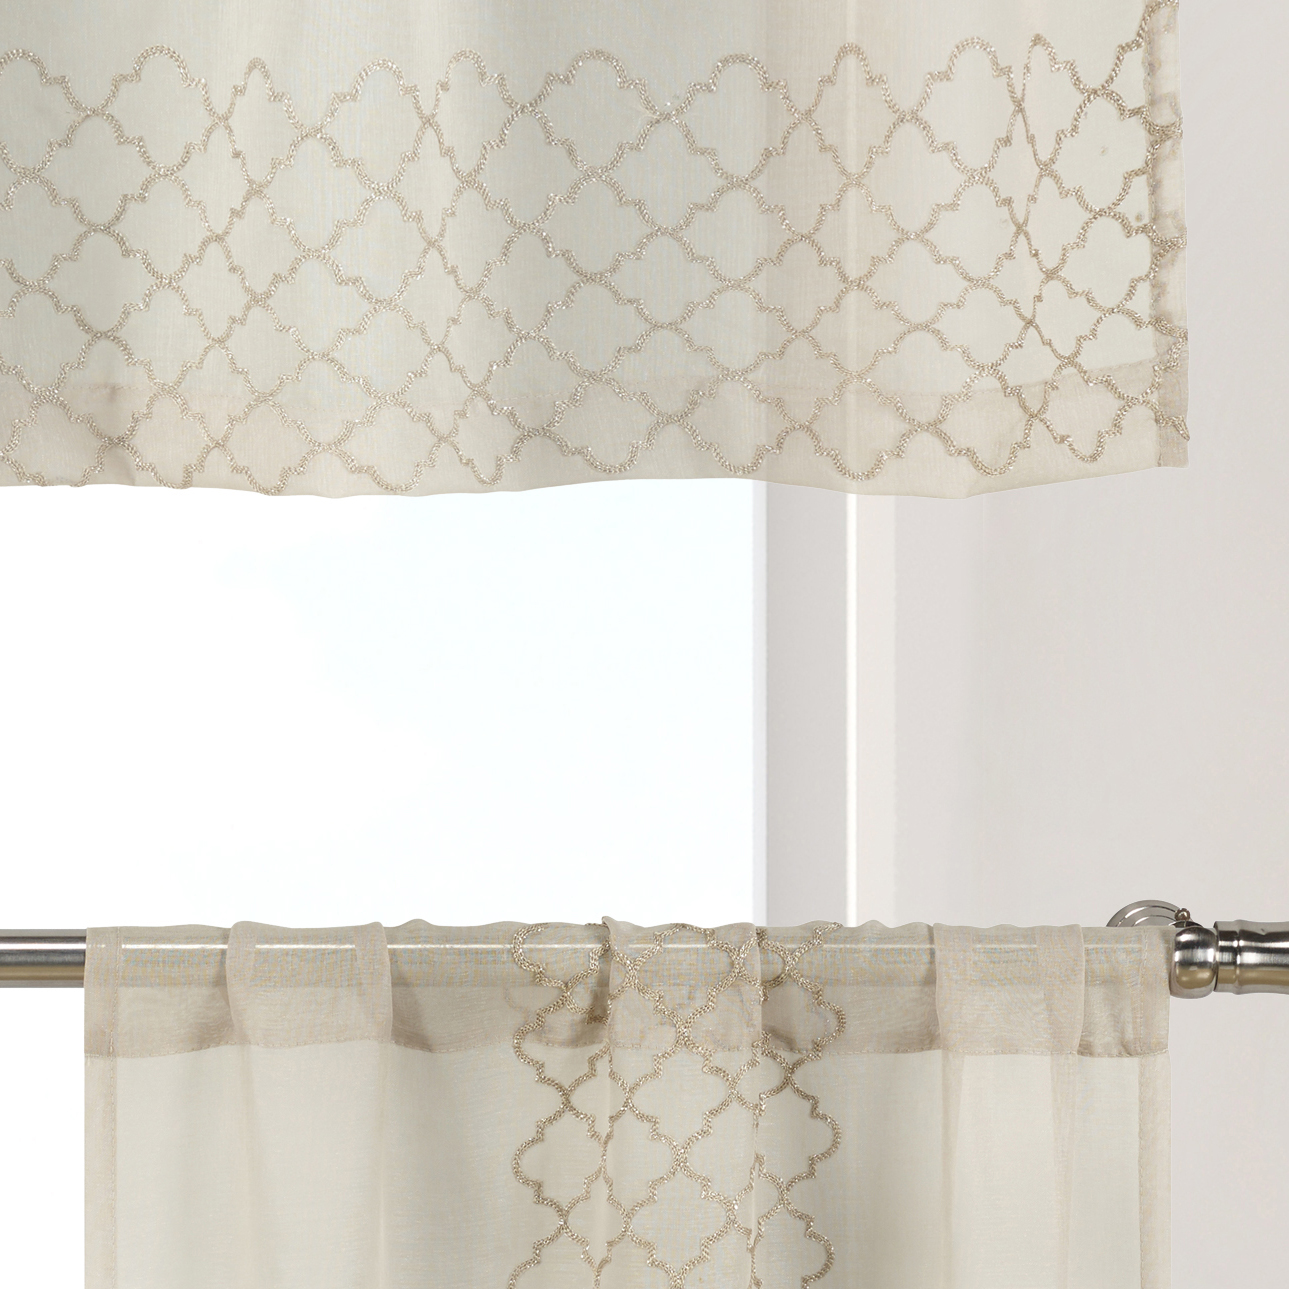 1 Valance 56in W X 15in L Single Bathroom And More Collection Sheer White Window Curtain Valance With Embroidered Metallic Silver Moroccan Trellis Design Valances Tiers Swags Valances